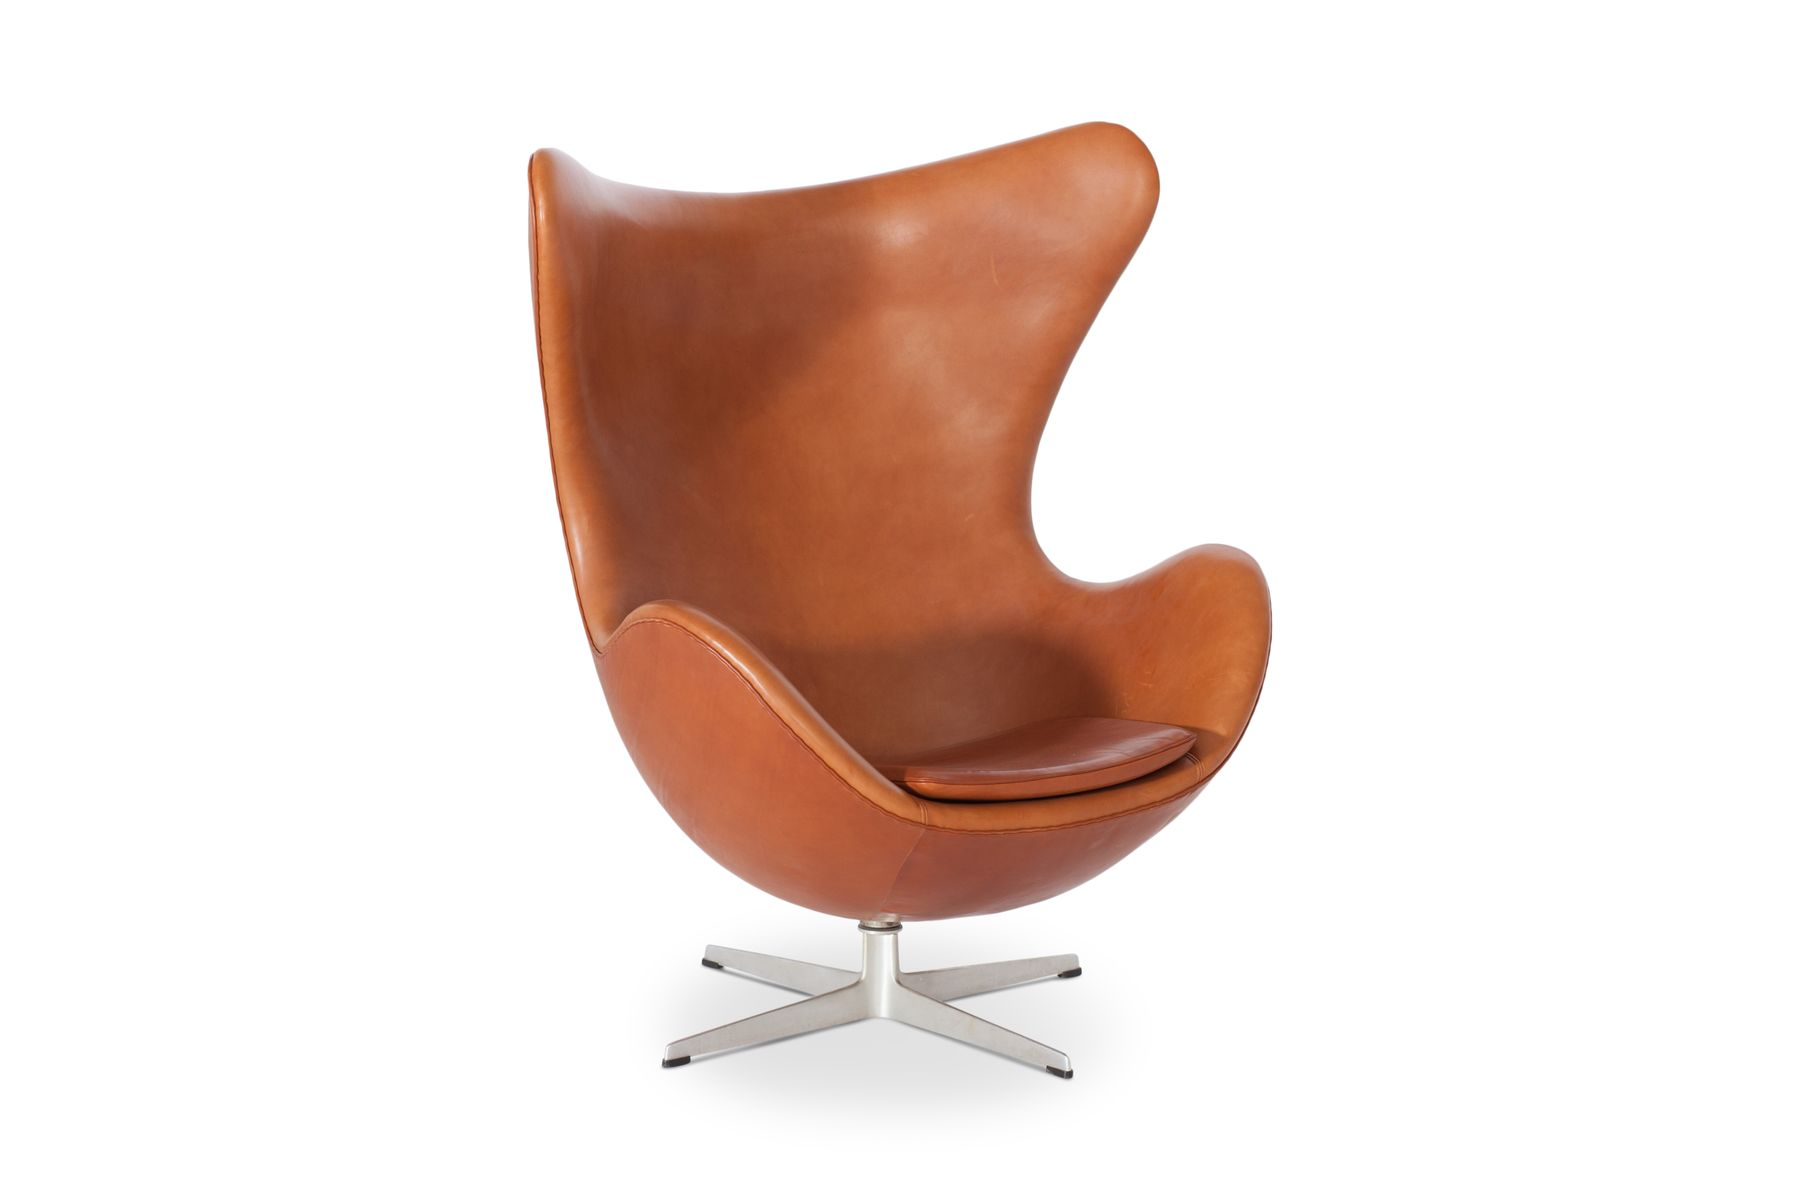 egg chair in cognac leather by arne jacobsen for fritz. Black Bedroom Furniture Sets. Home Design Ideas